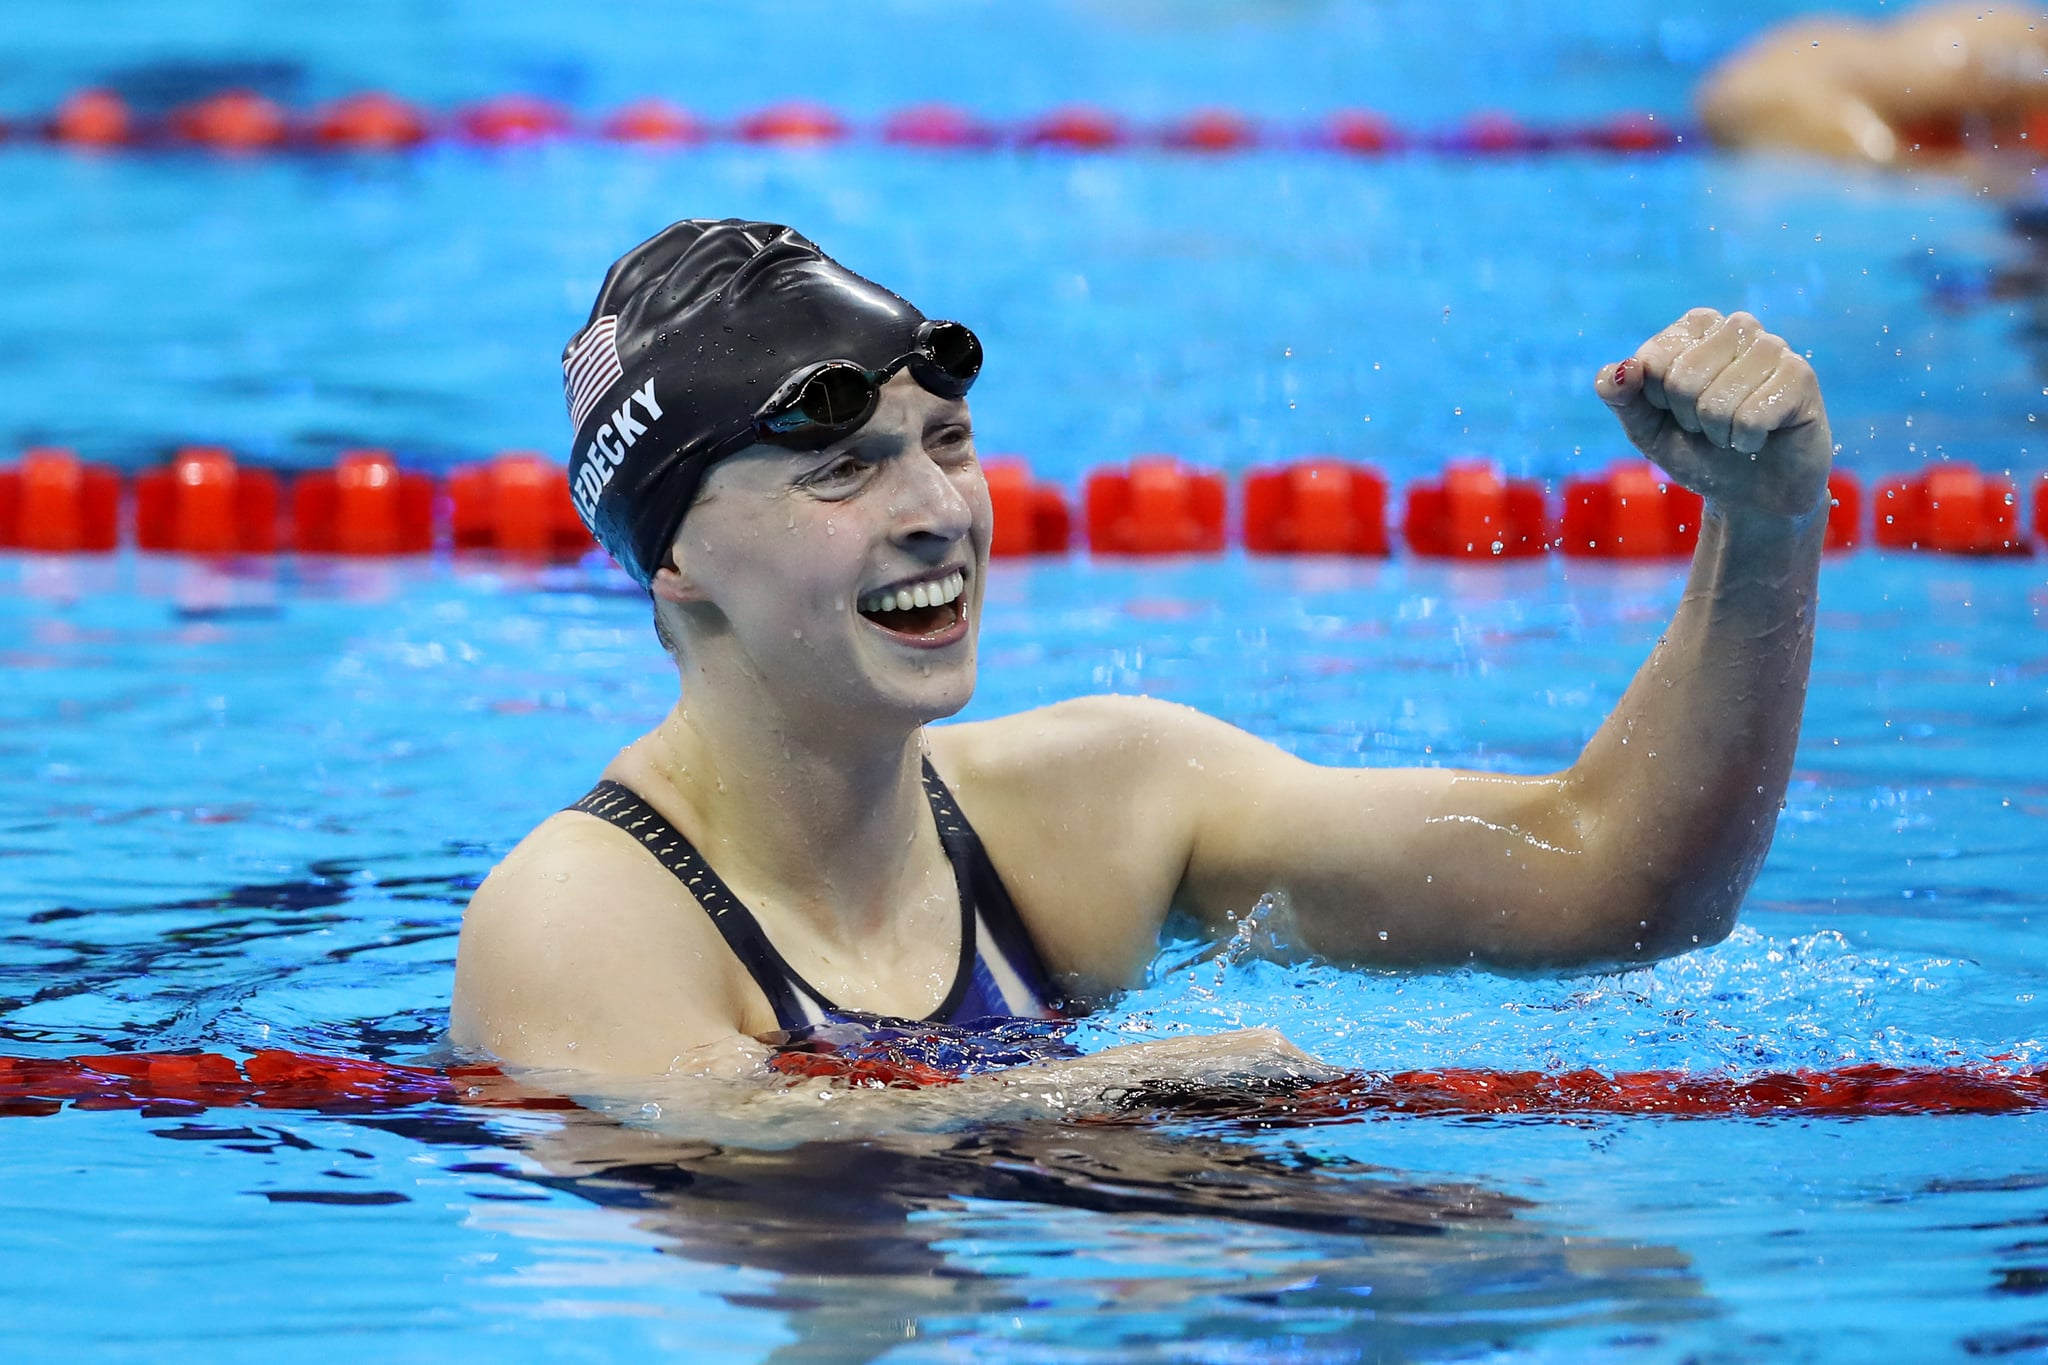 RIO DE JANEIRO, BRAZIL - AUGUST 09:  Katie Ledecky of the United States celebrates winning gold in the Women's 200m Freestyle Final on Day 4 of the Rio 2016 Olympic Games at the Olympic Aquatics Stadium on August 9, 2016 in Rio de Janeiro, Brazil.  (Photo by Al Bello/Getty Images)